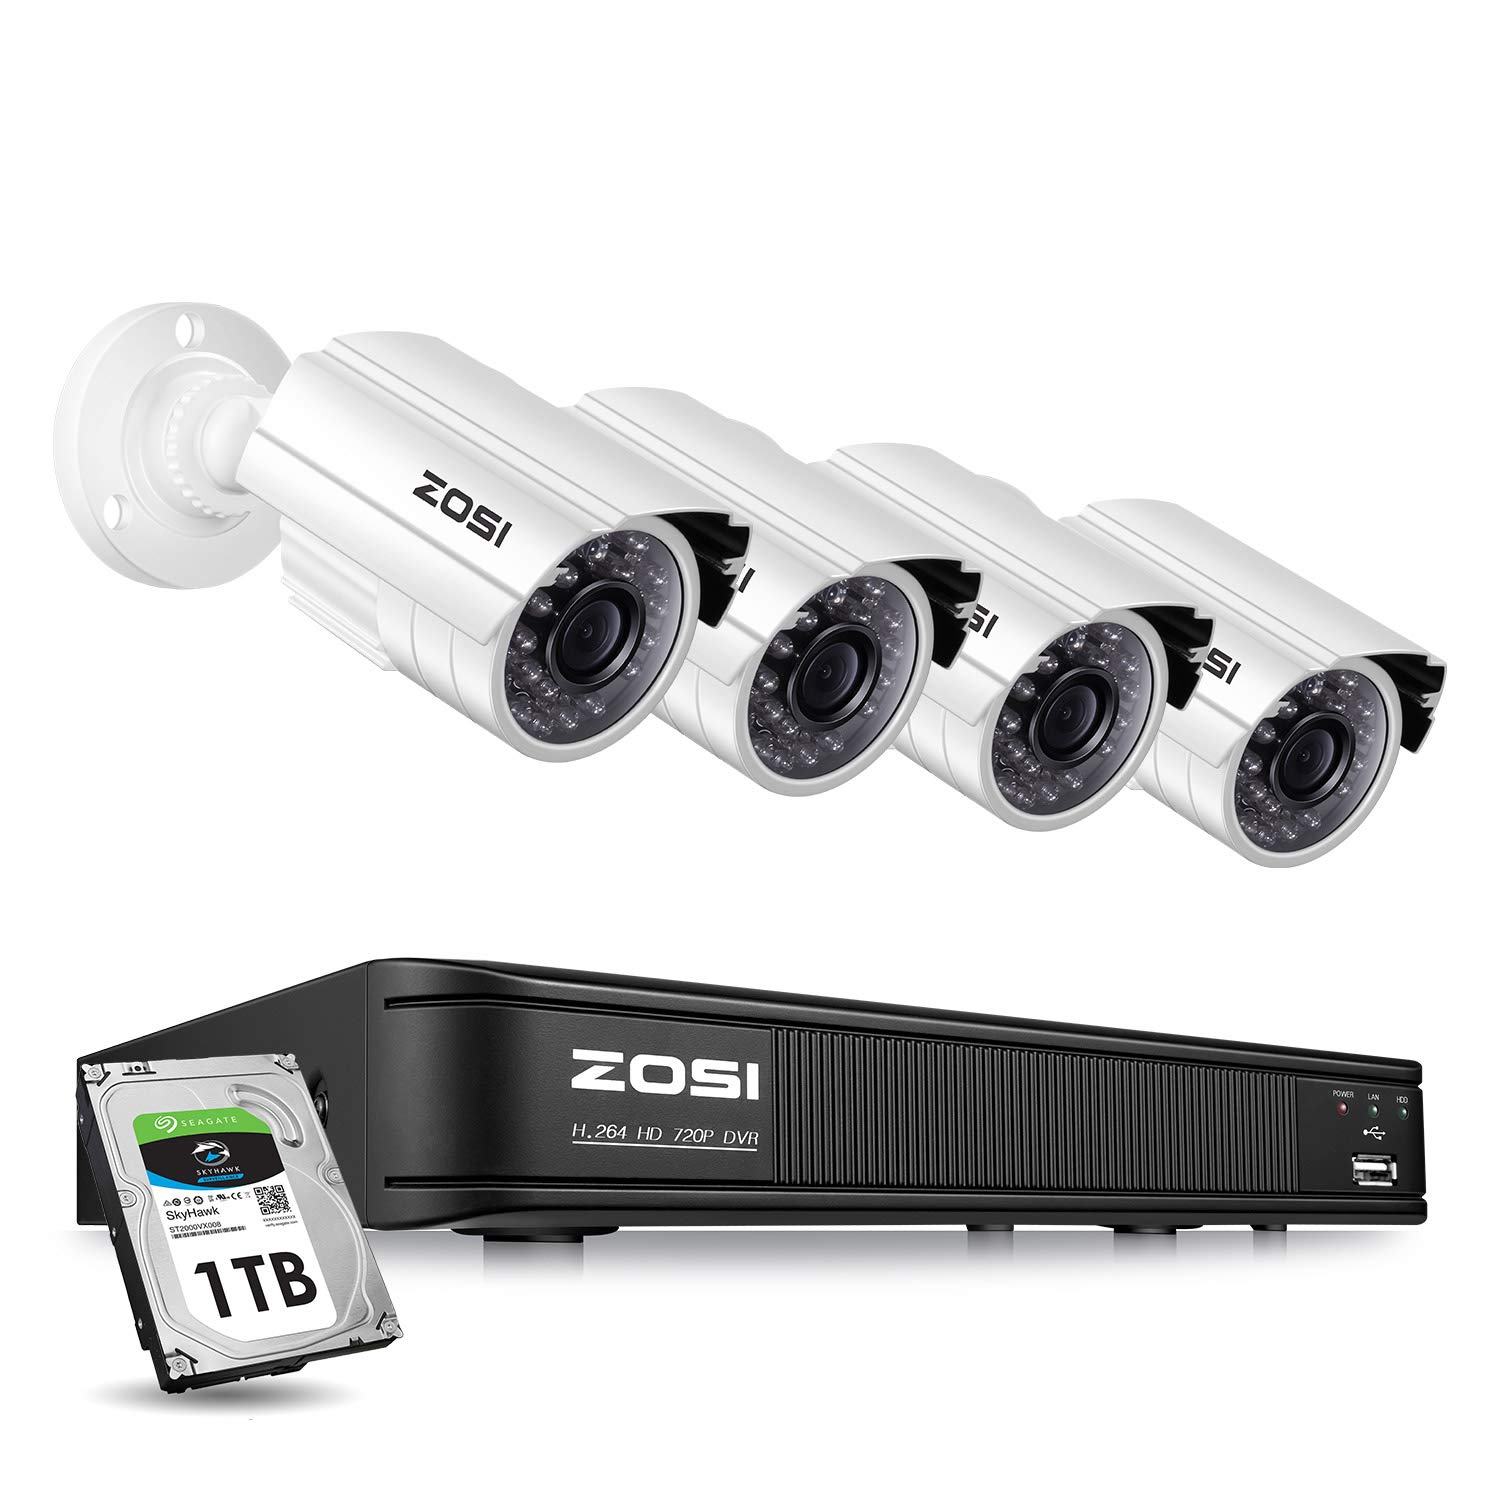 ZOSI Home Security Camera System Outdoor Indoor, 1080p Lite/720p Security DVR 8 Channel with Hard Drive 1TB and 4 x 720p Surveillance Bullet Camera, Remote Access, Motion Detection by ZOSI